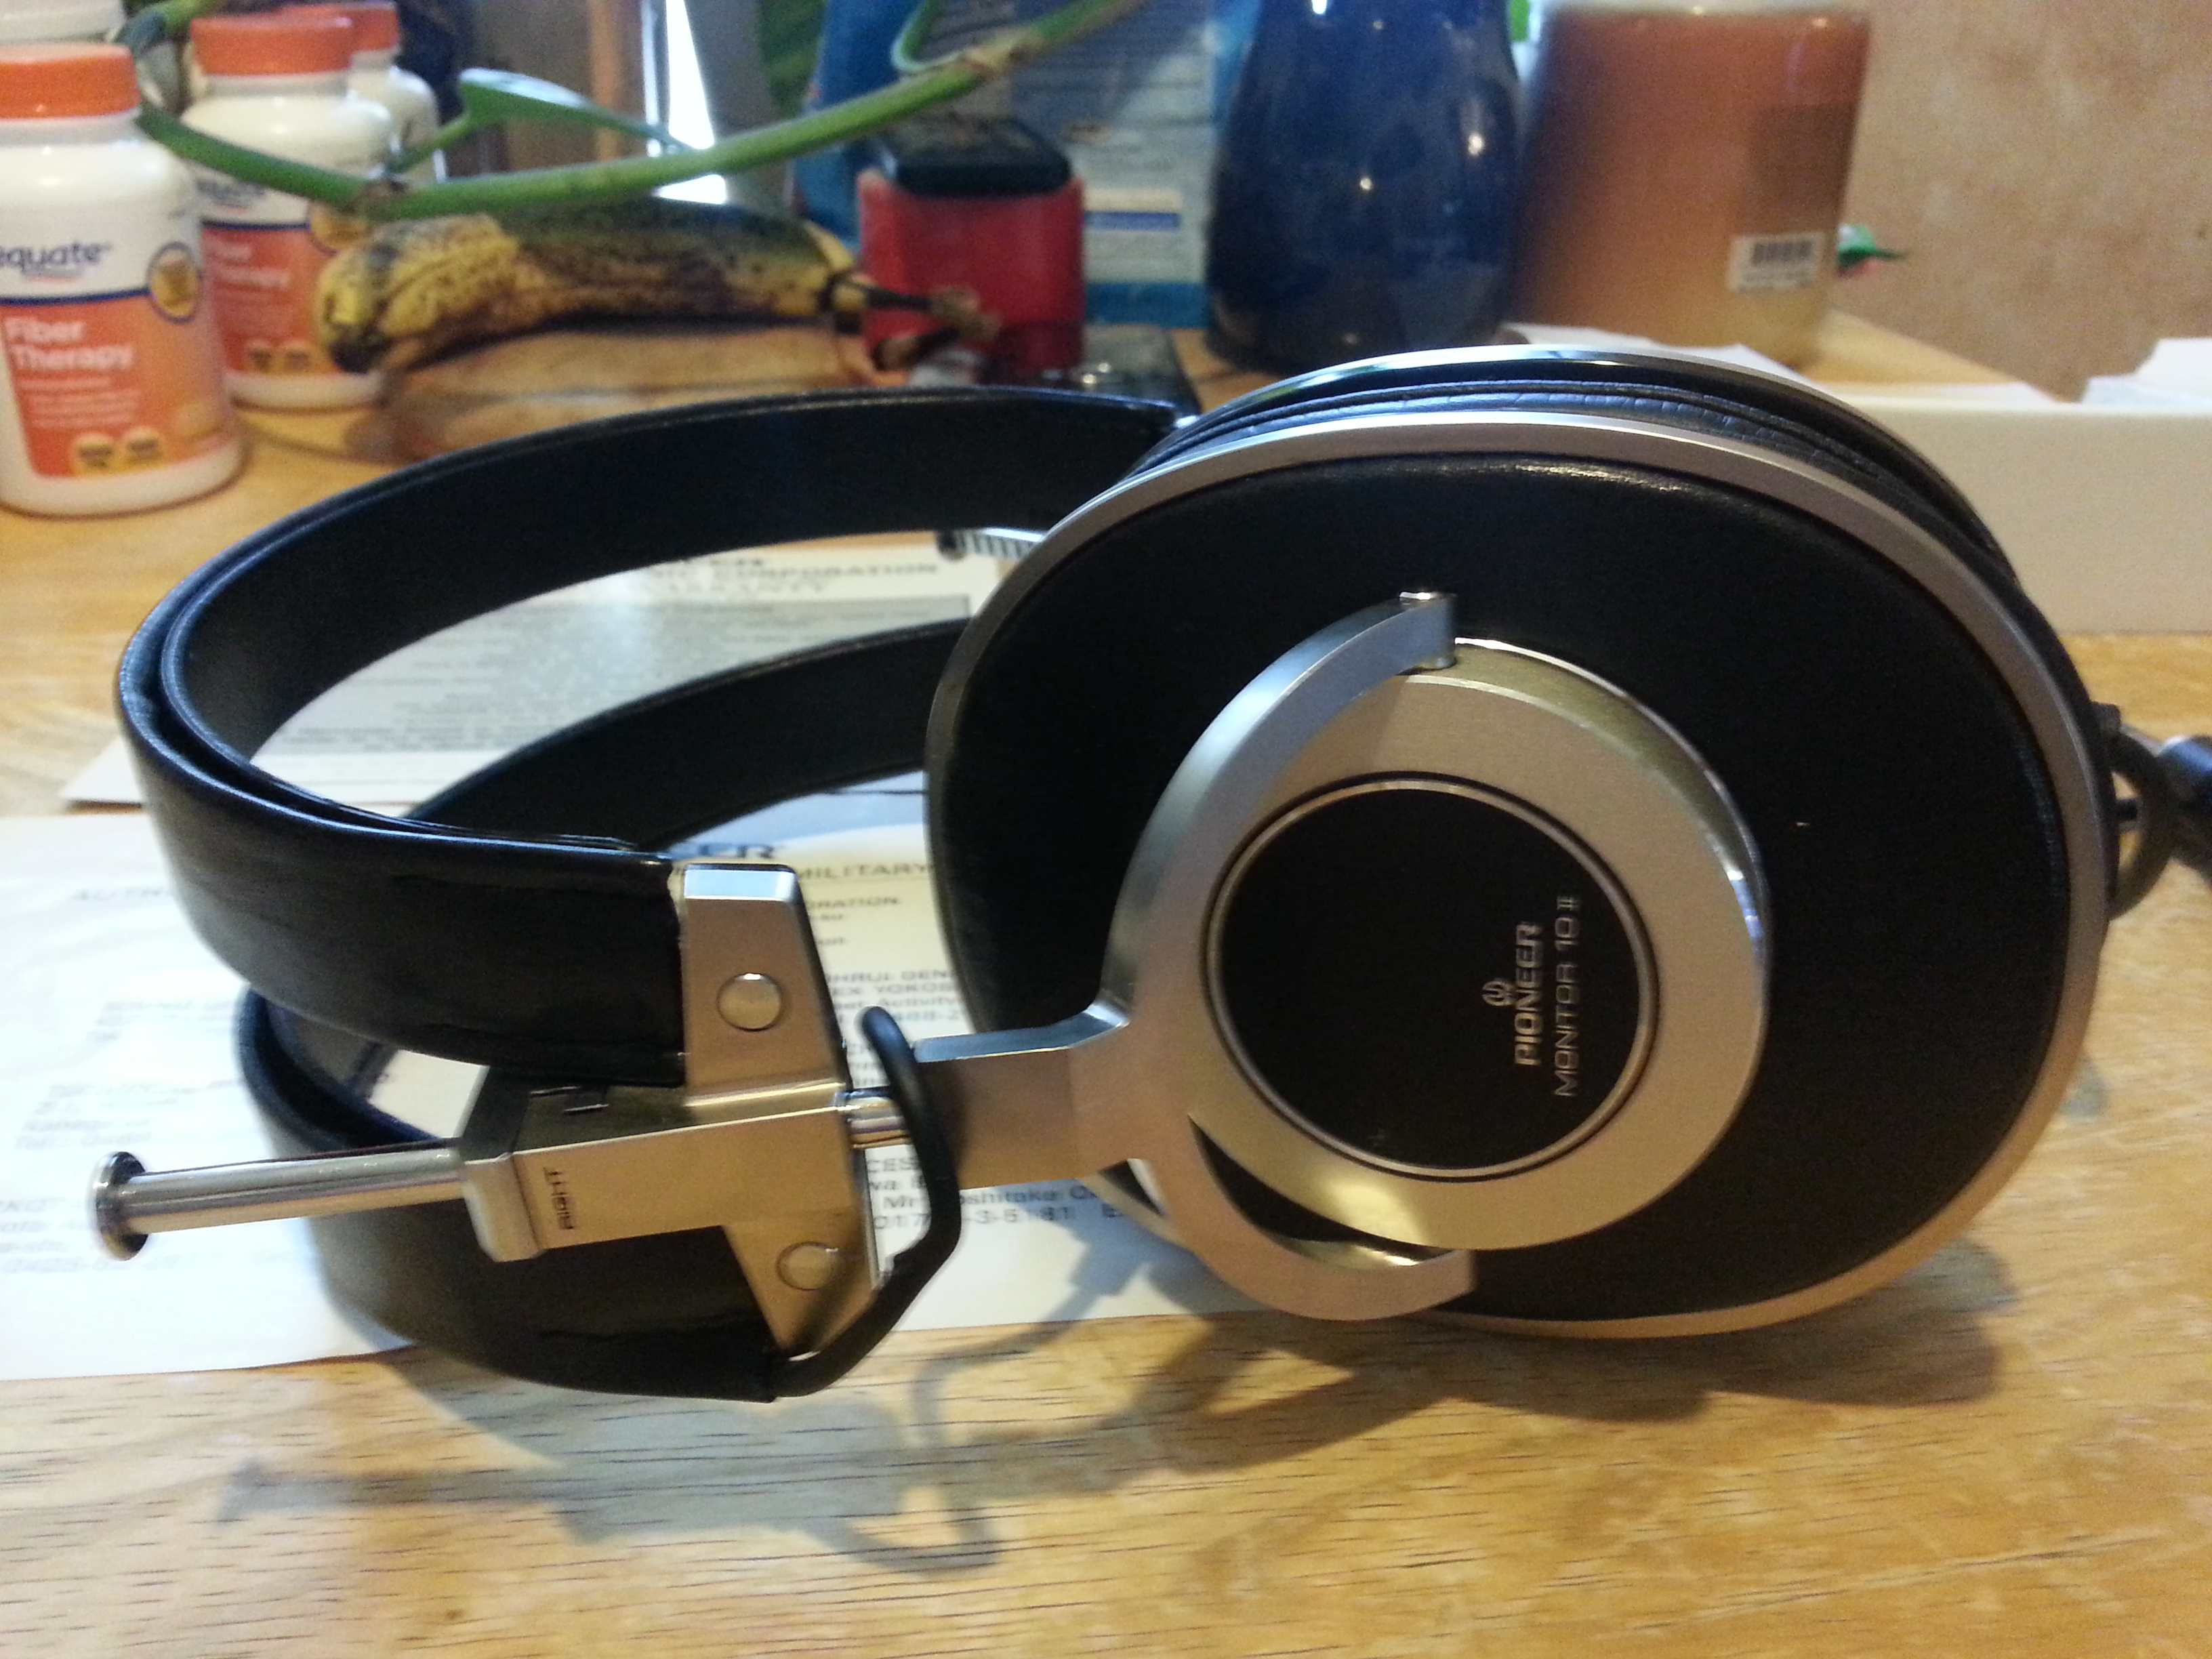 562a64826a9 Me and my vintage headphone fetish (Enormous Update 4/13/15)